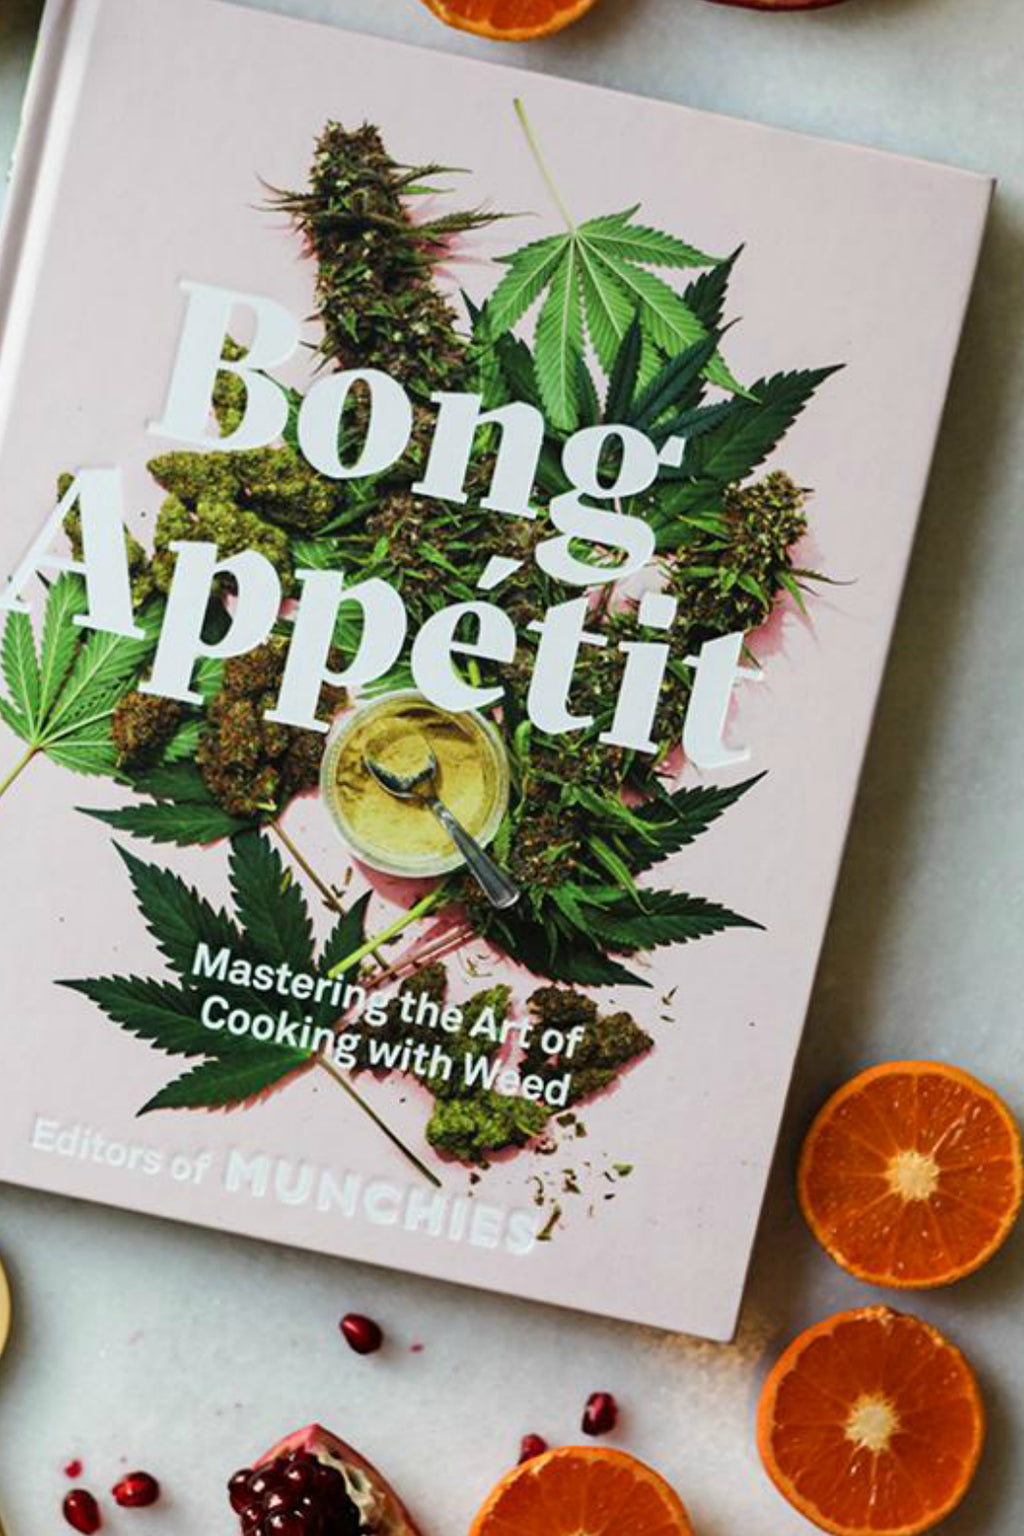 Bong Apétit: Mastering the Art of Cooking with Weed